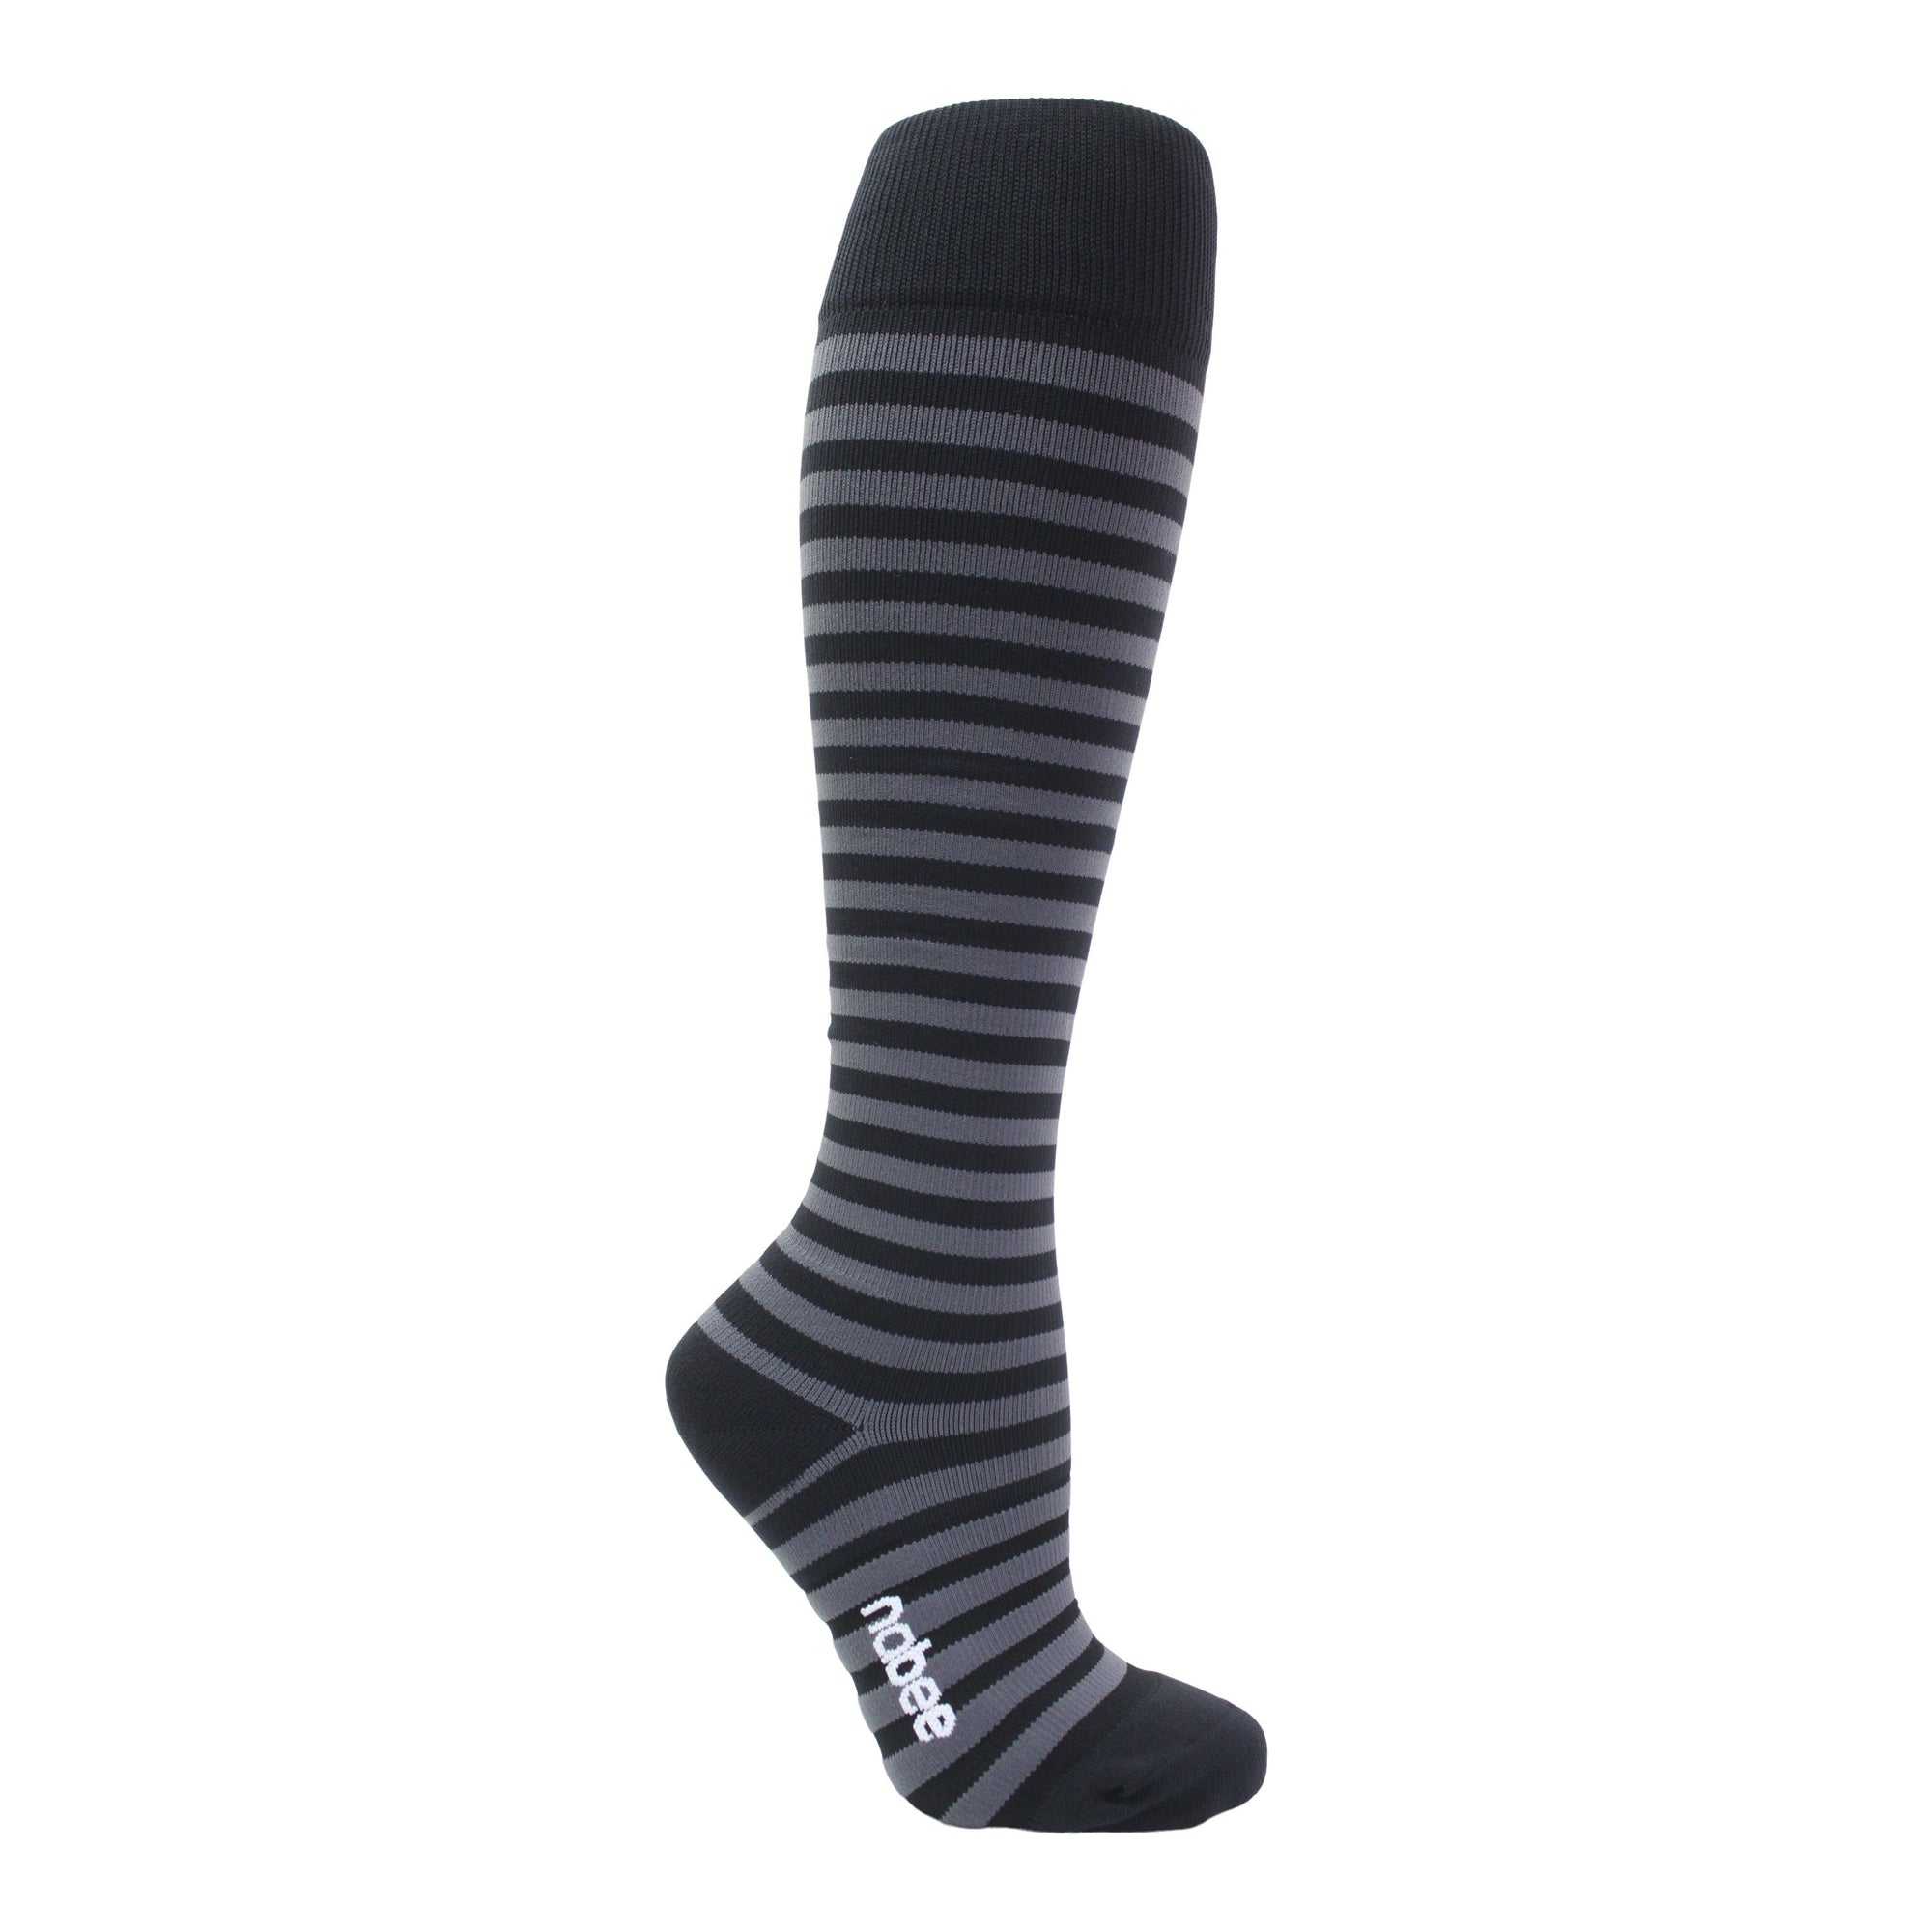 Compression Socks - Bolo (20-30mmHg)